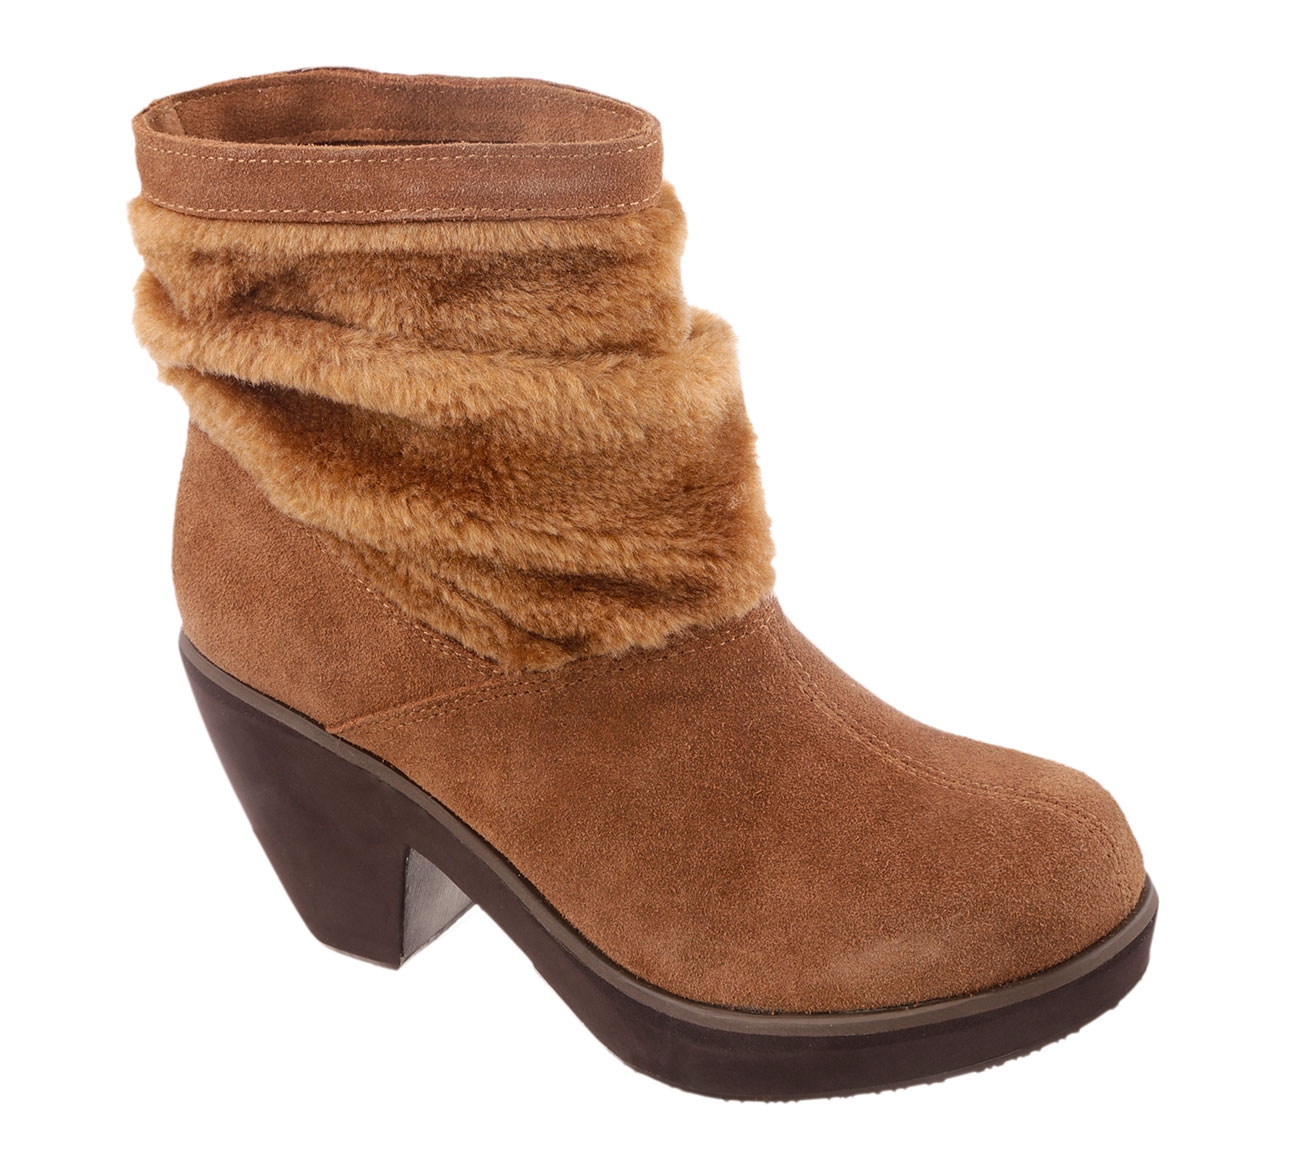 Sears has an awesome boot clearance sale underway with prices from $$9.99